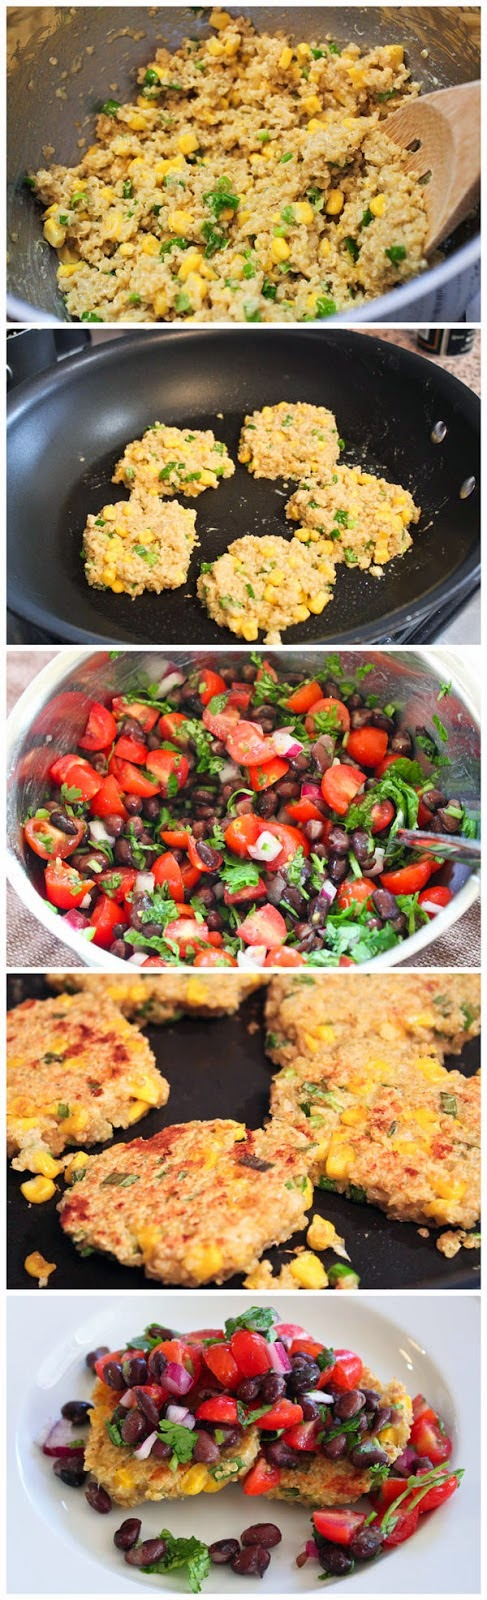 Quinoa-Corn-Griddle-Cakes-With-Black-Bean-Salsa-Recipe